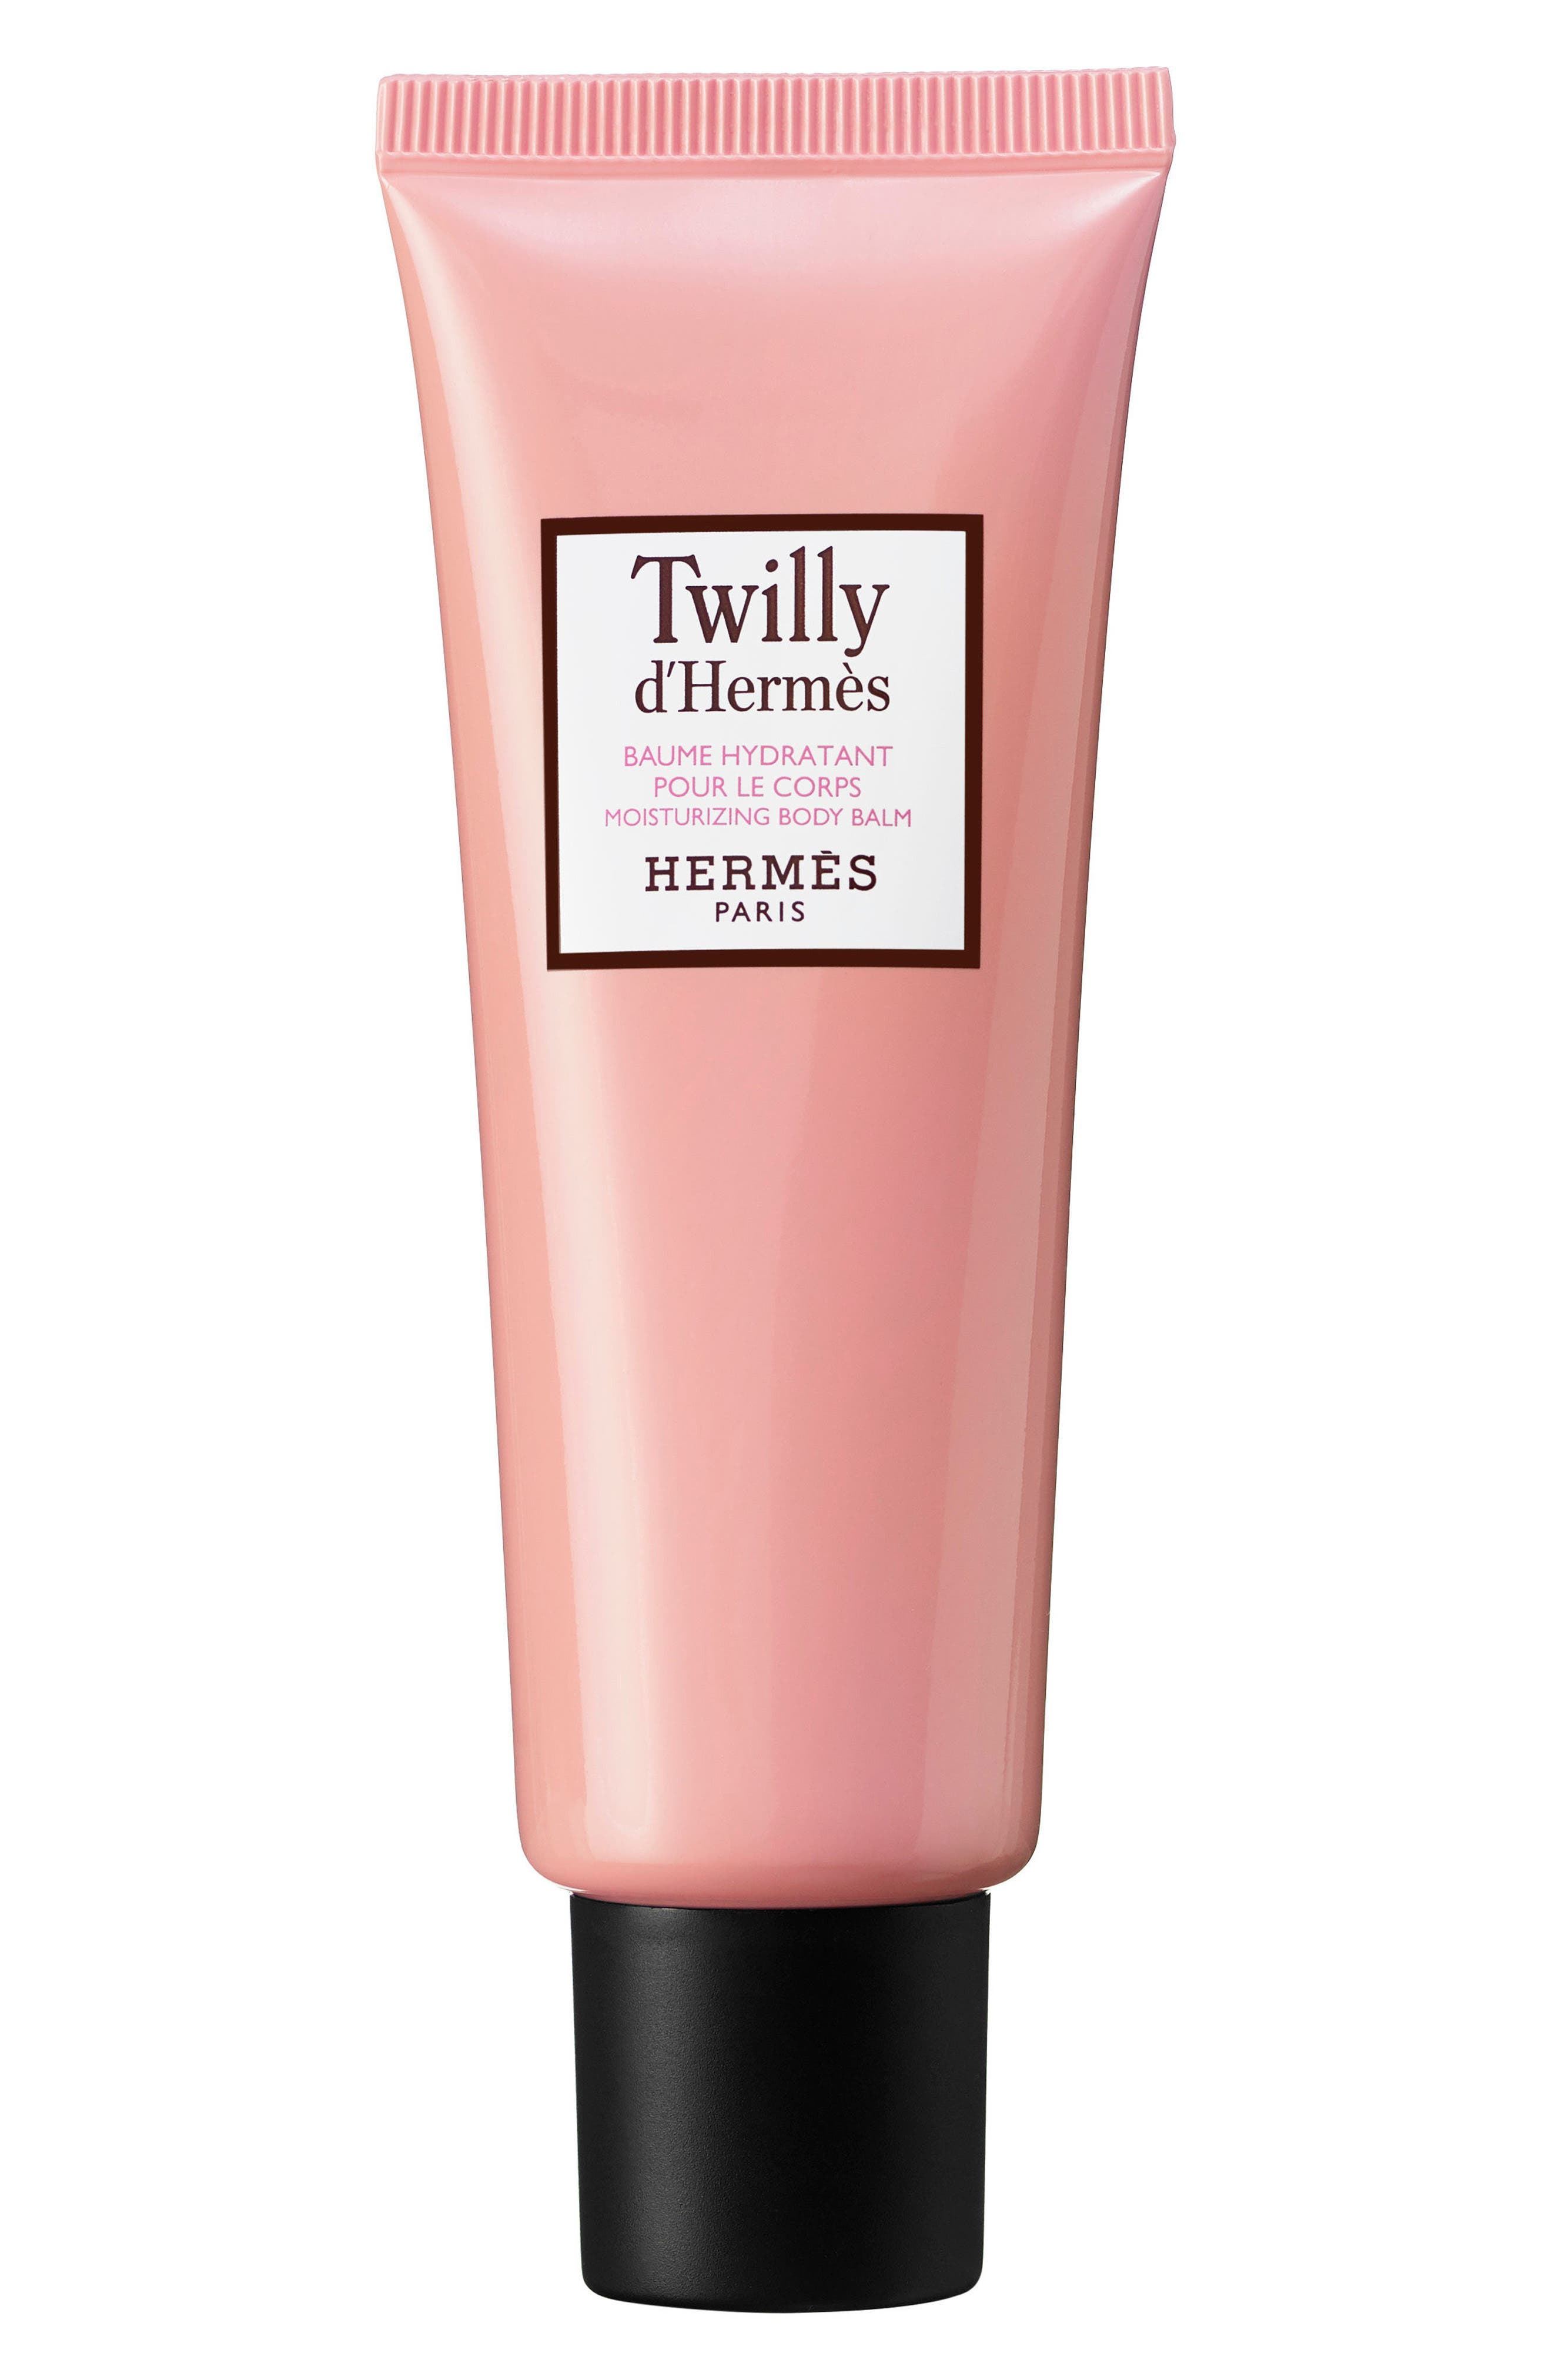 Twilly d'Hermès - Moisturizing body balm,                         Main,                         color, NO COLOR